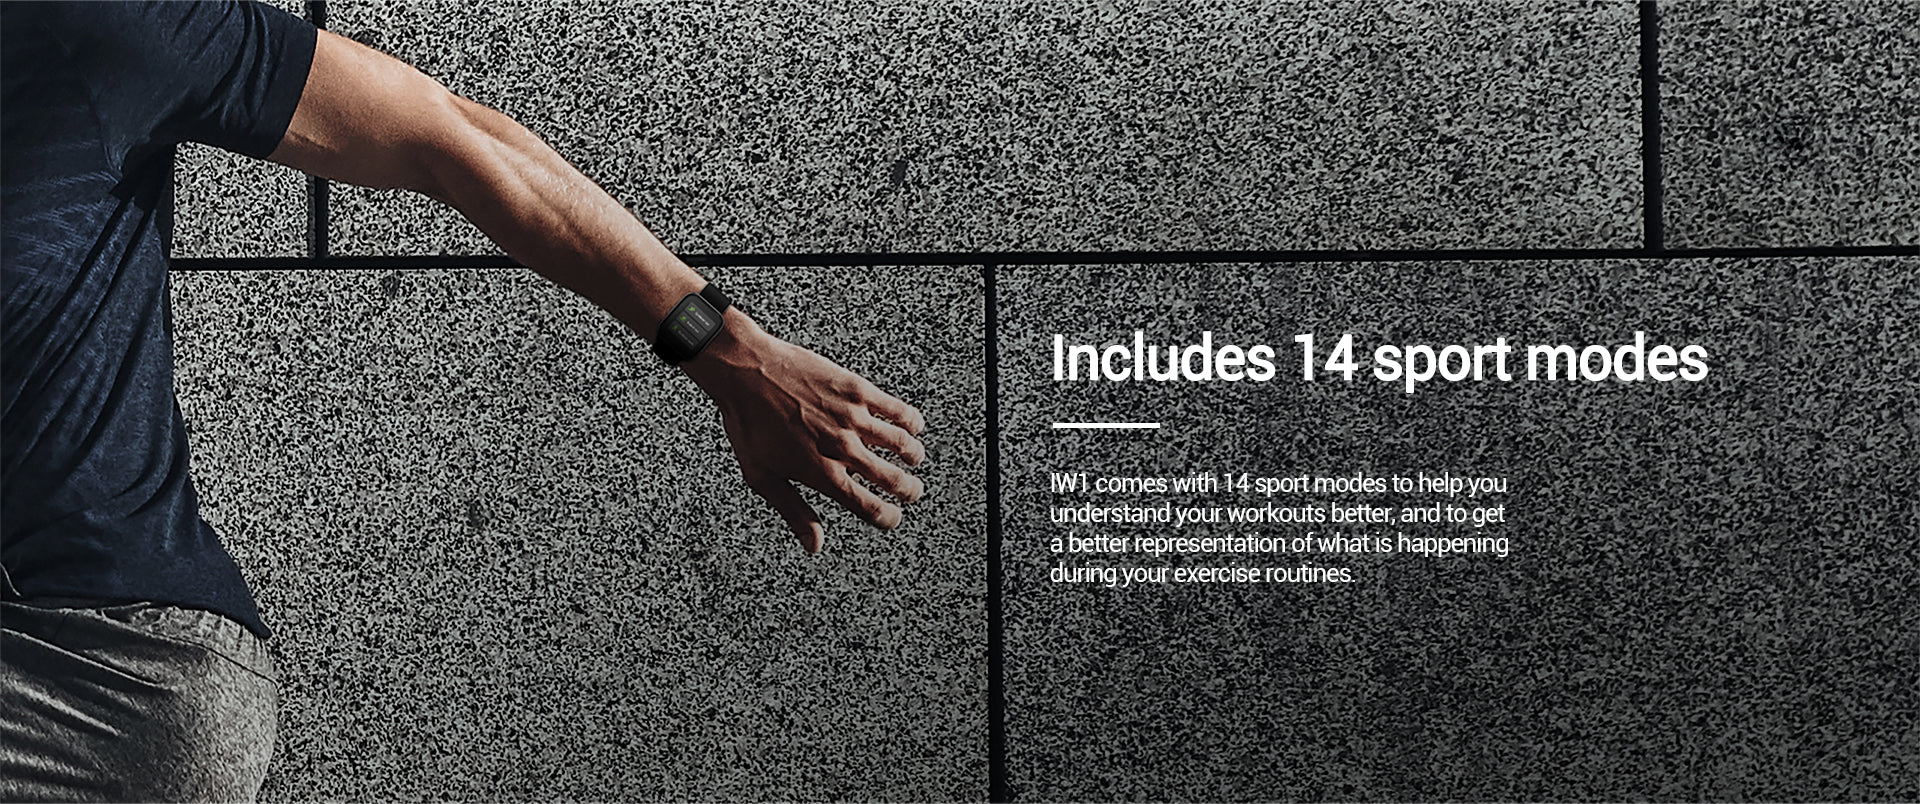 IW1 comes with 14 sport modes to help youunderstand your workouts better, and to geta better representation of what is happeningduring your exercise routines.